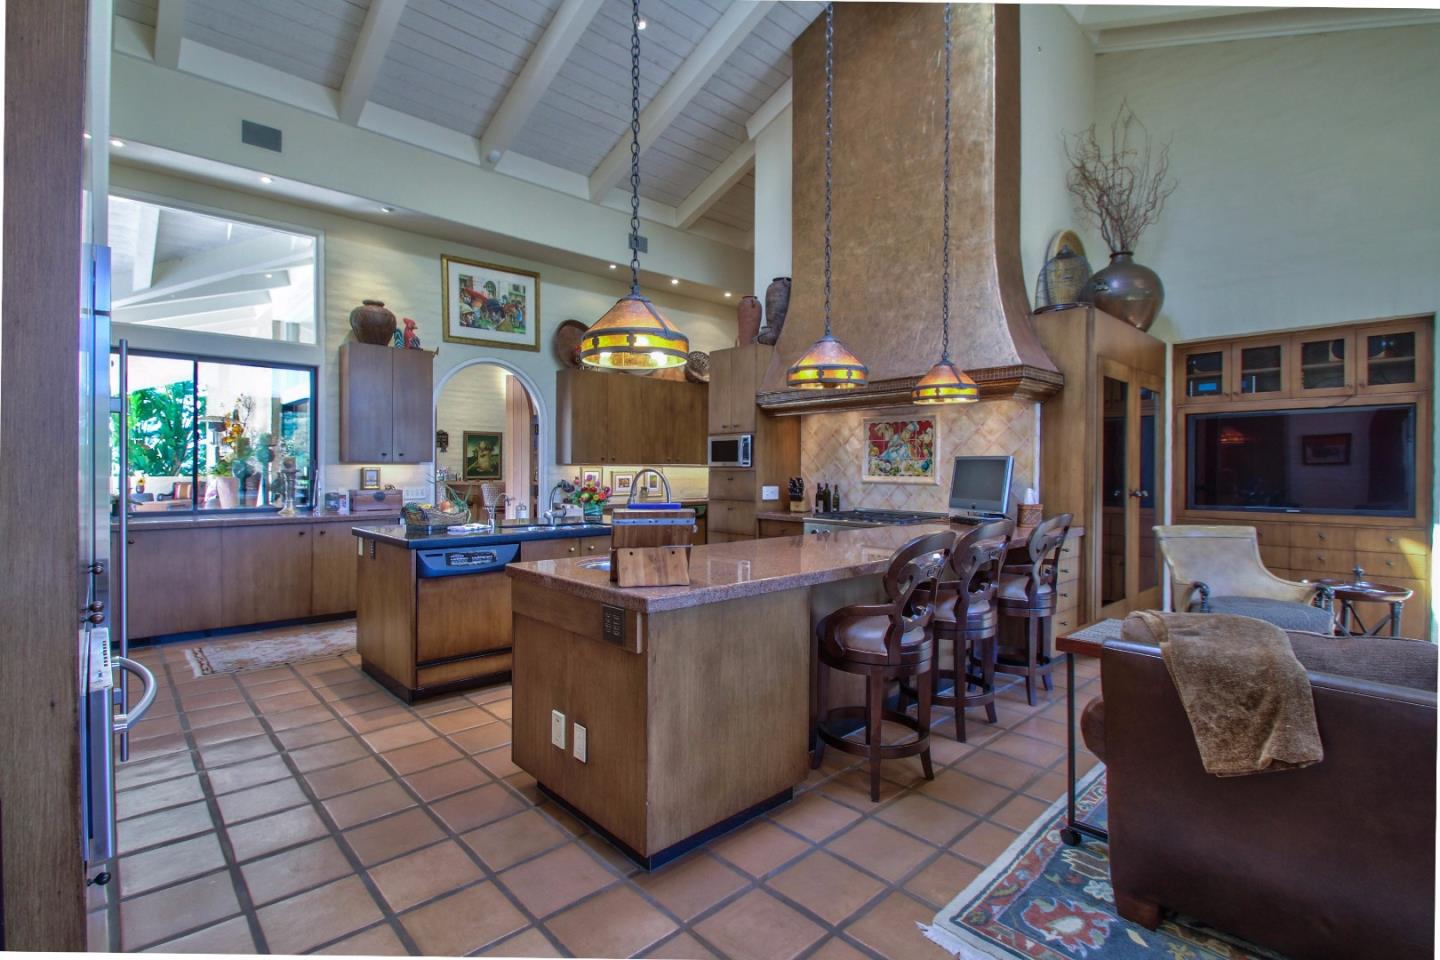 Additional photo for property listing at 14450 Roland Canyon Road  Salinas, California 93908 United States